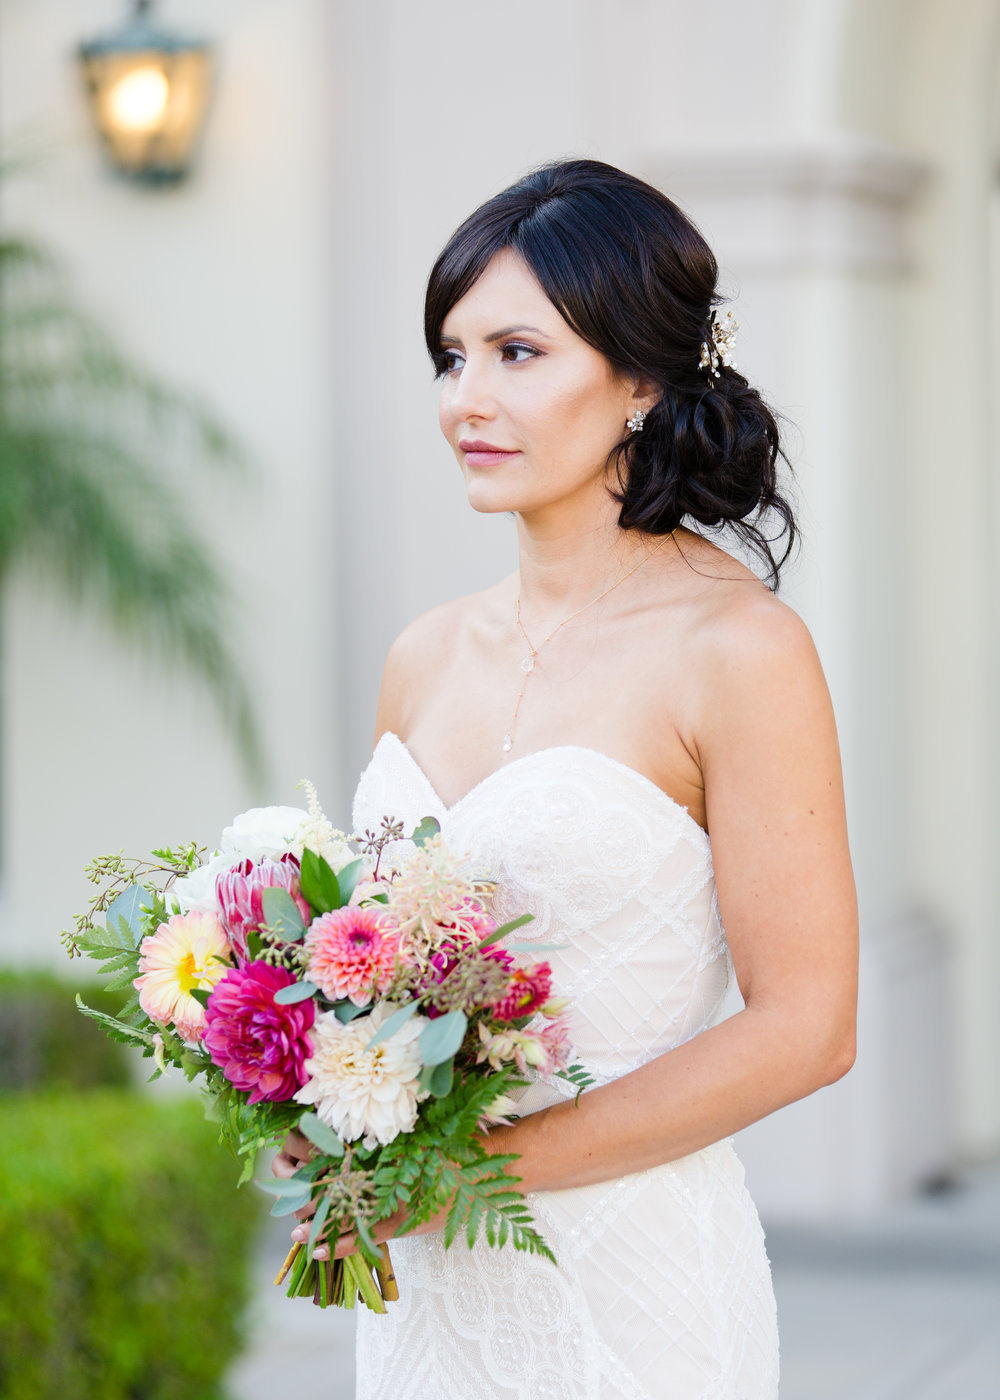 Brunette Bride with Updo Hairstyle holding bouquet outside in Wedding Photography. Bridal Hair and Makeup by Vanity Belle in Orange County (Costa Mesa) and San Diego (La Jolla)